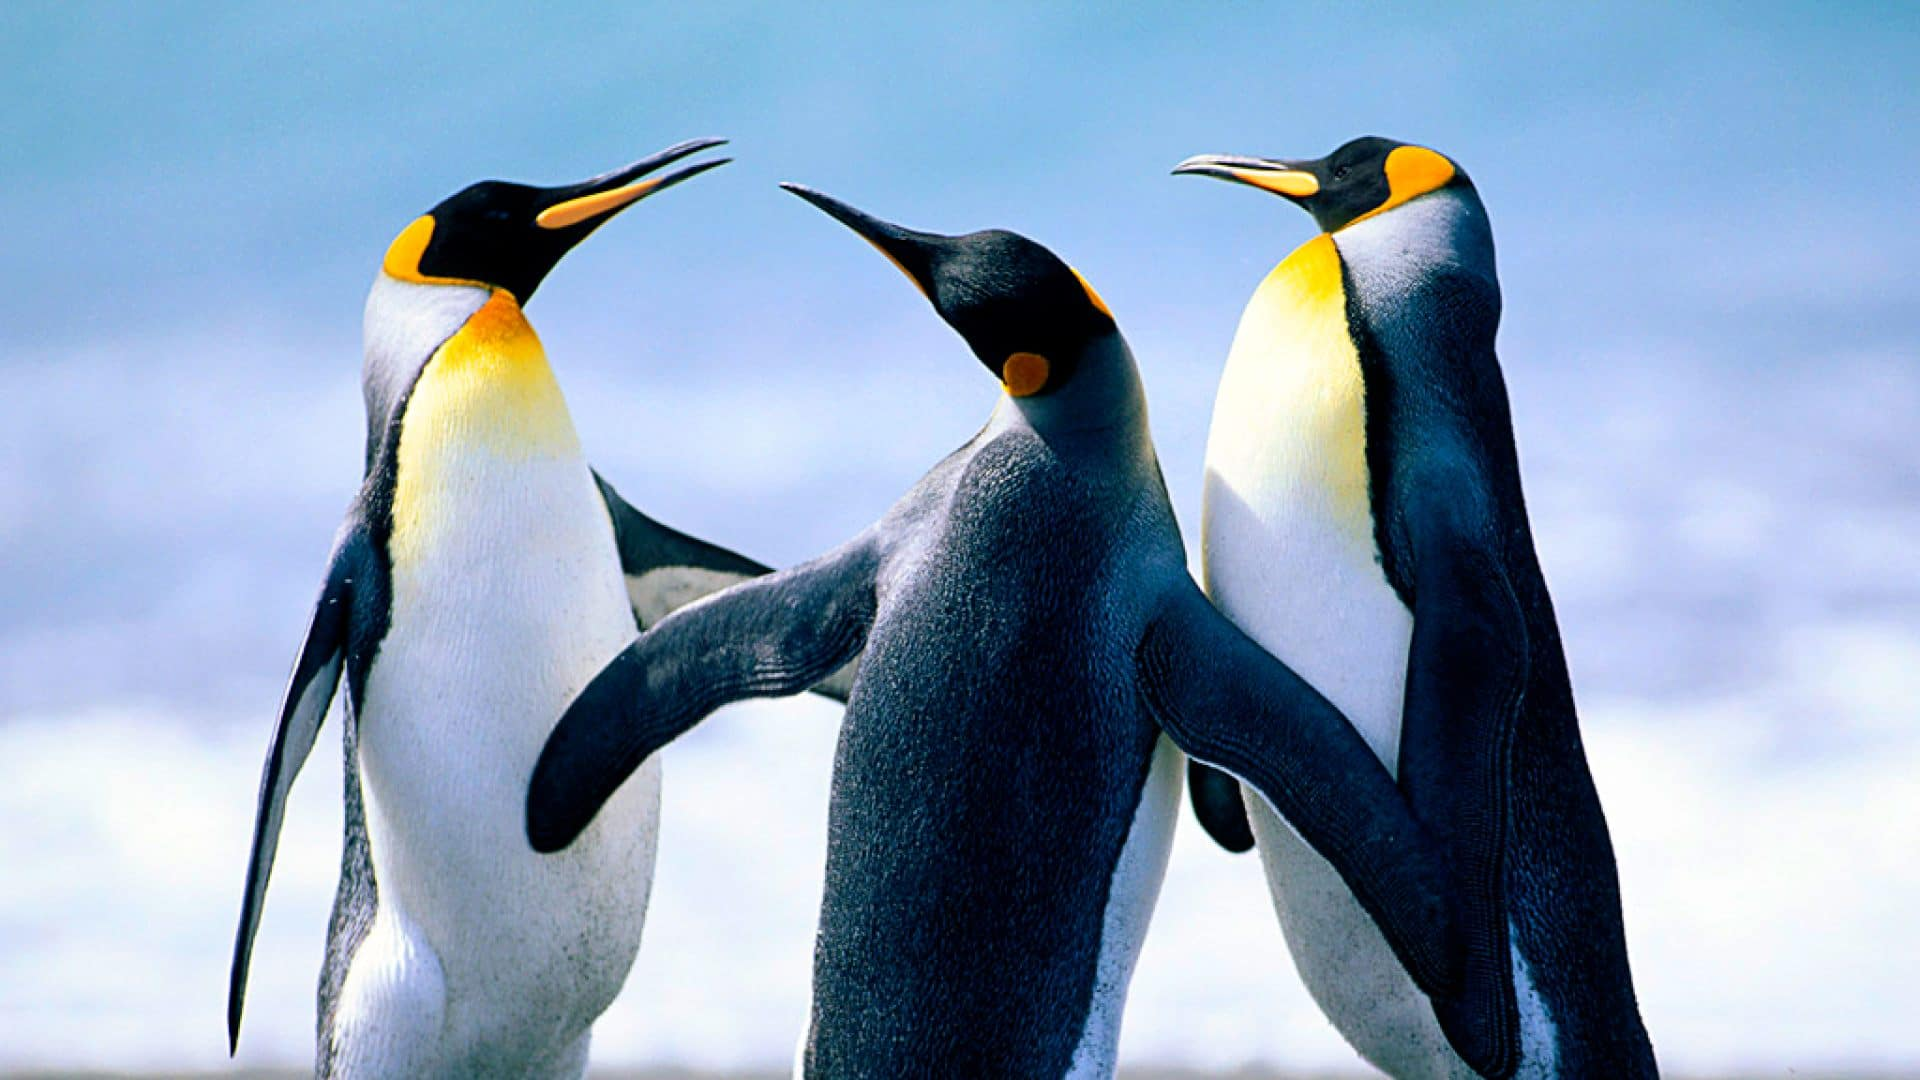 Wallpapers Pinguins